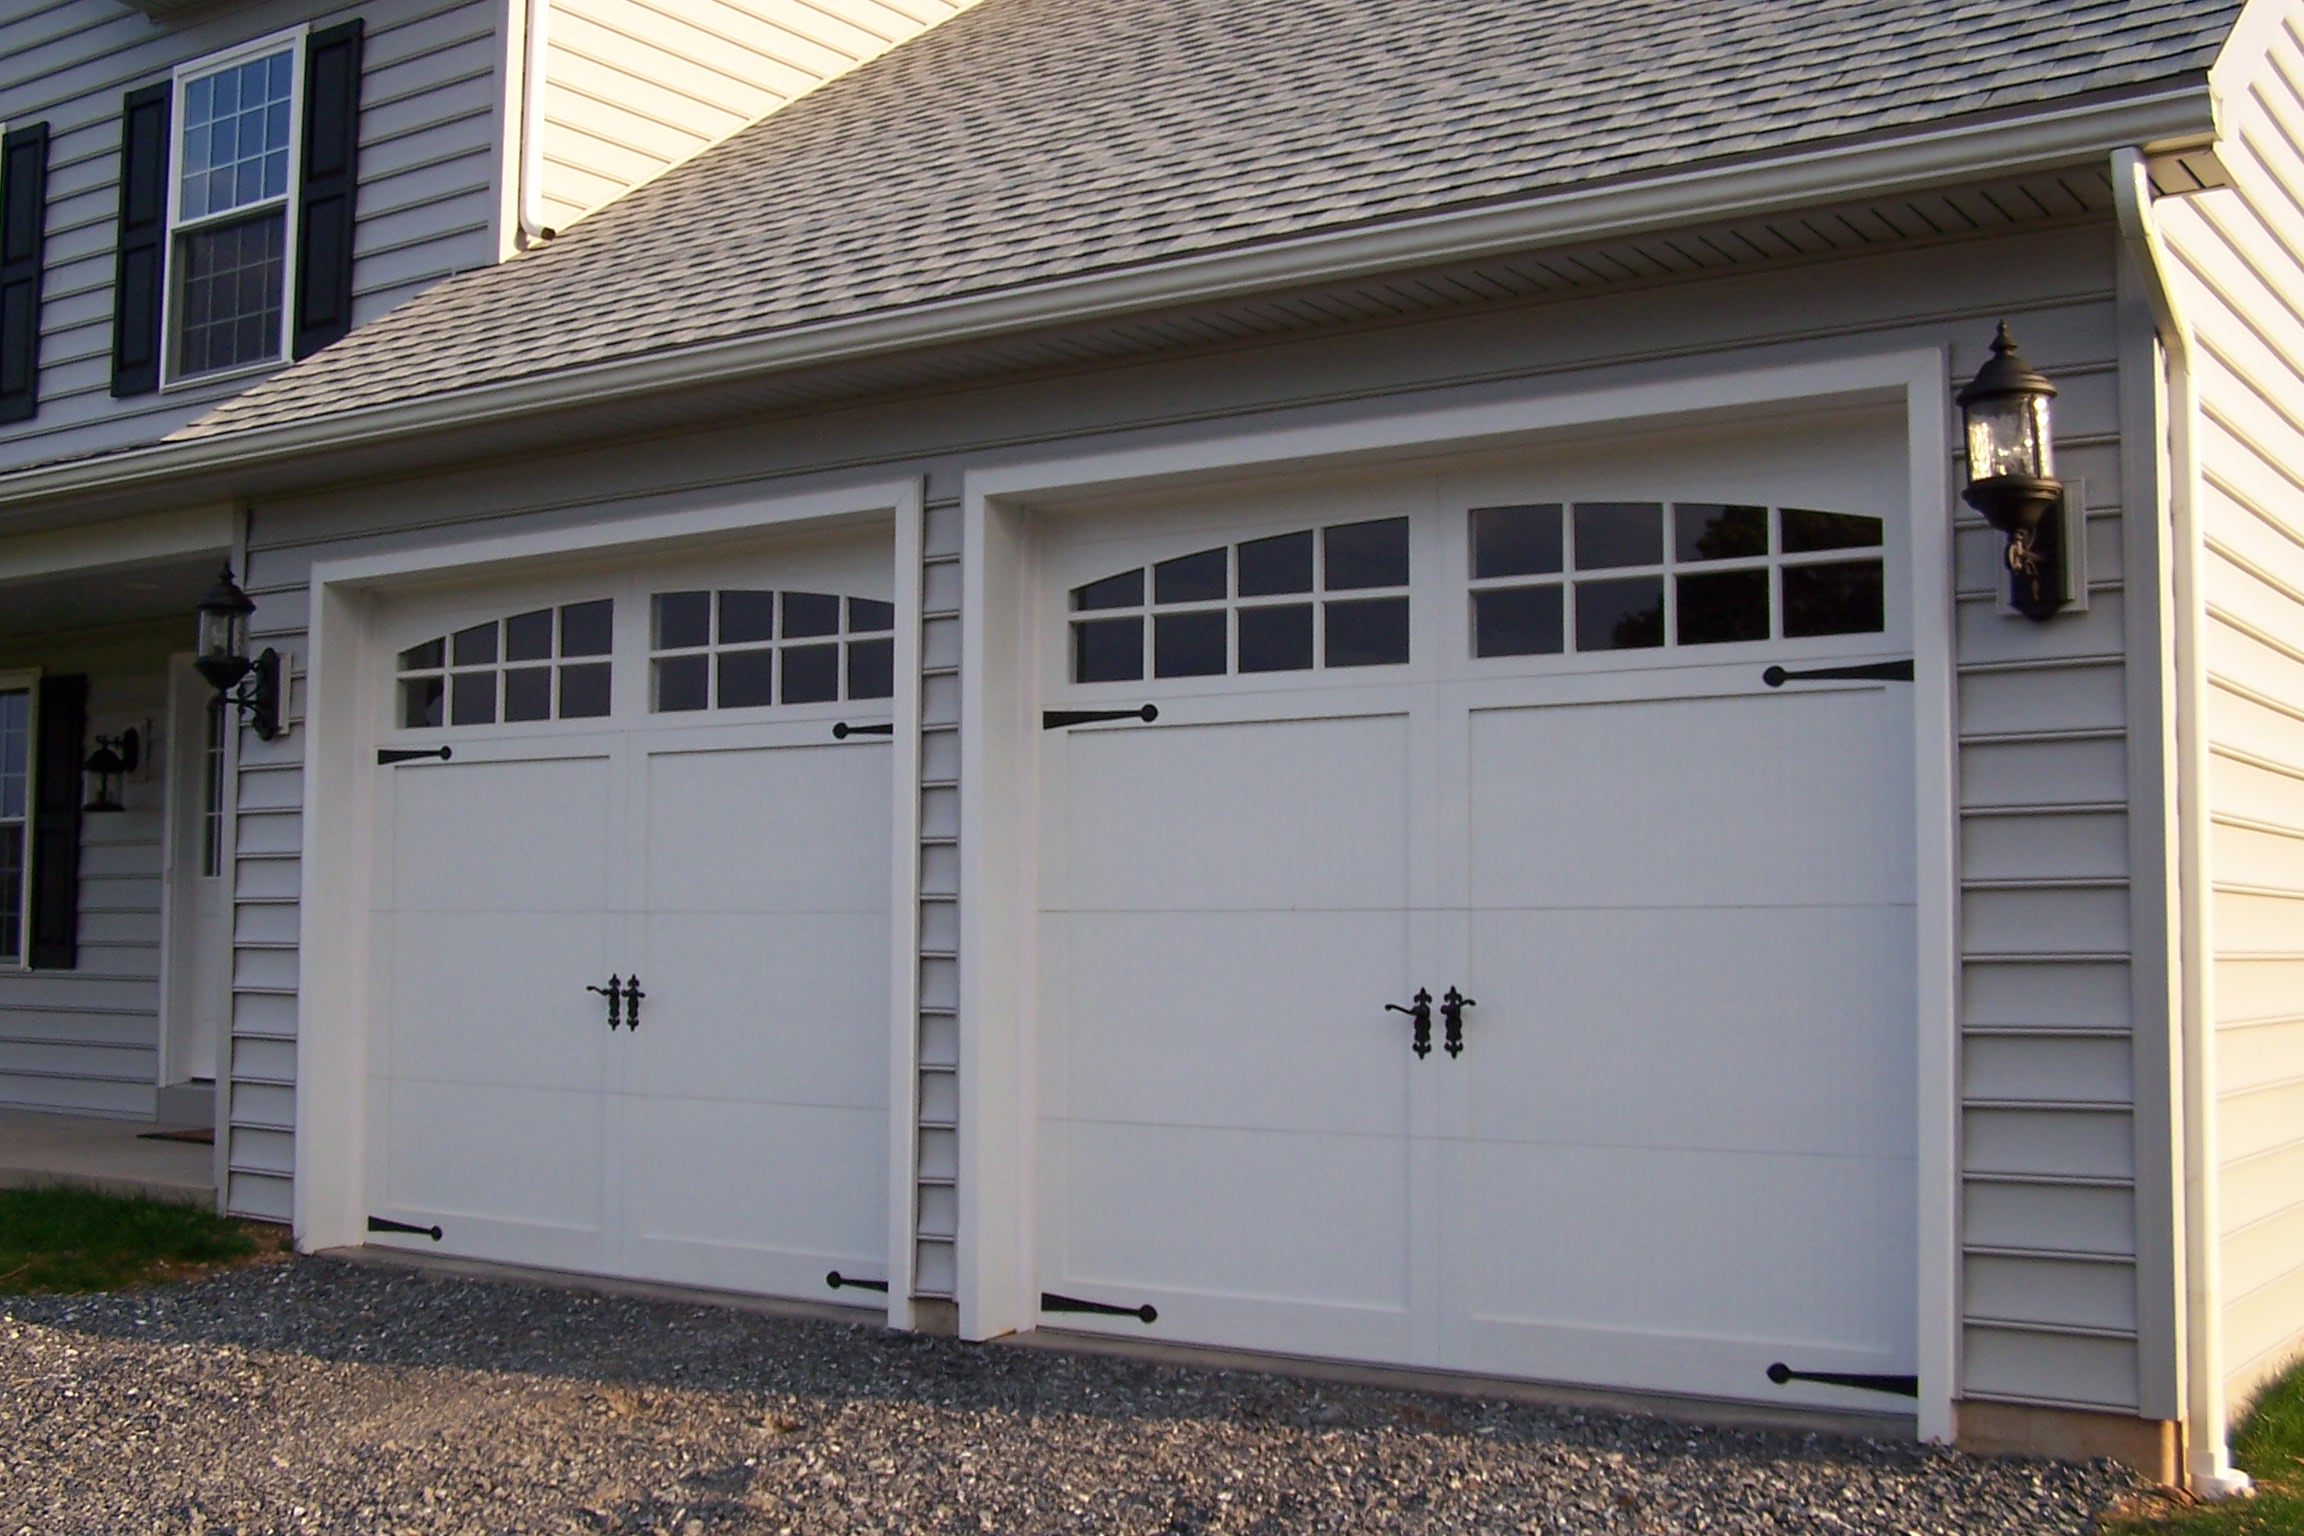 Evolution of the Garage Doors